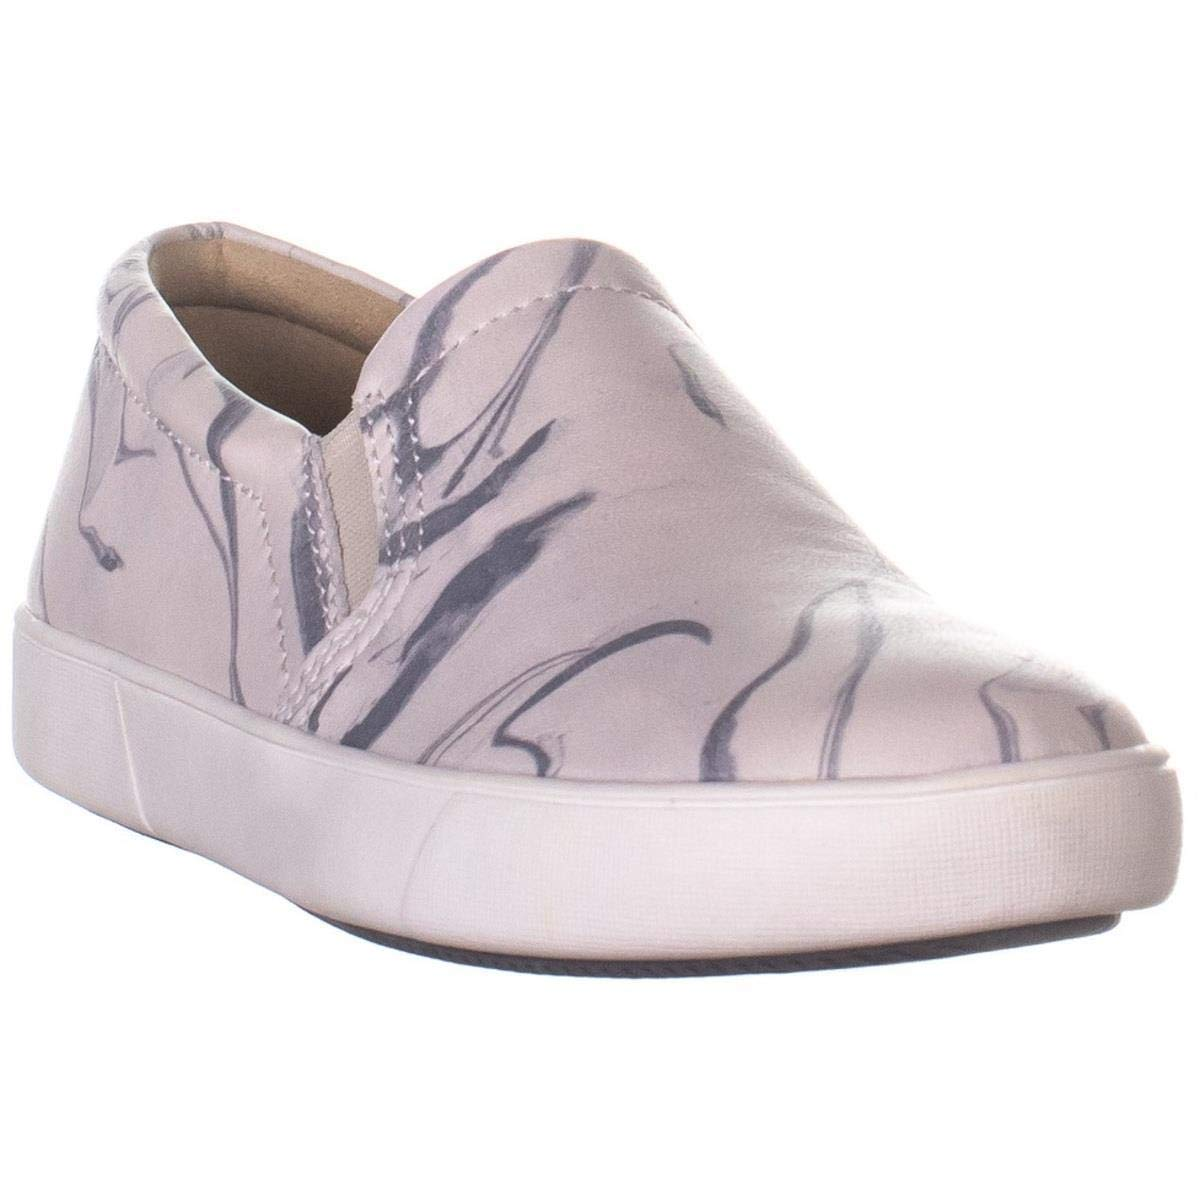 1889aa8085dd3 Amazon.com | Naturalizer Marianne Slip-On Fashion Sneakers, Blue ...